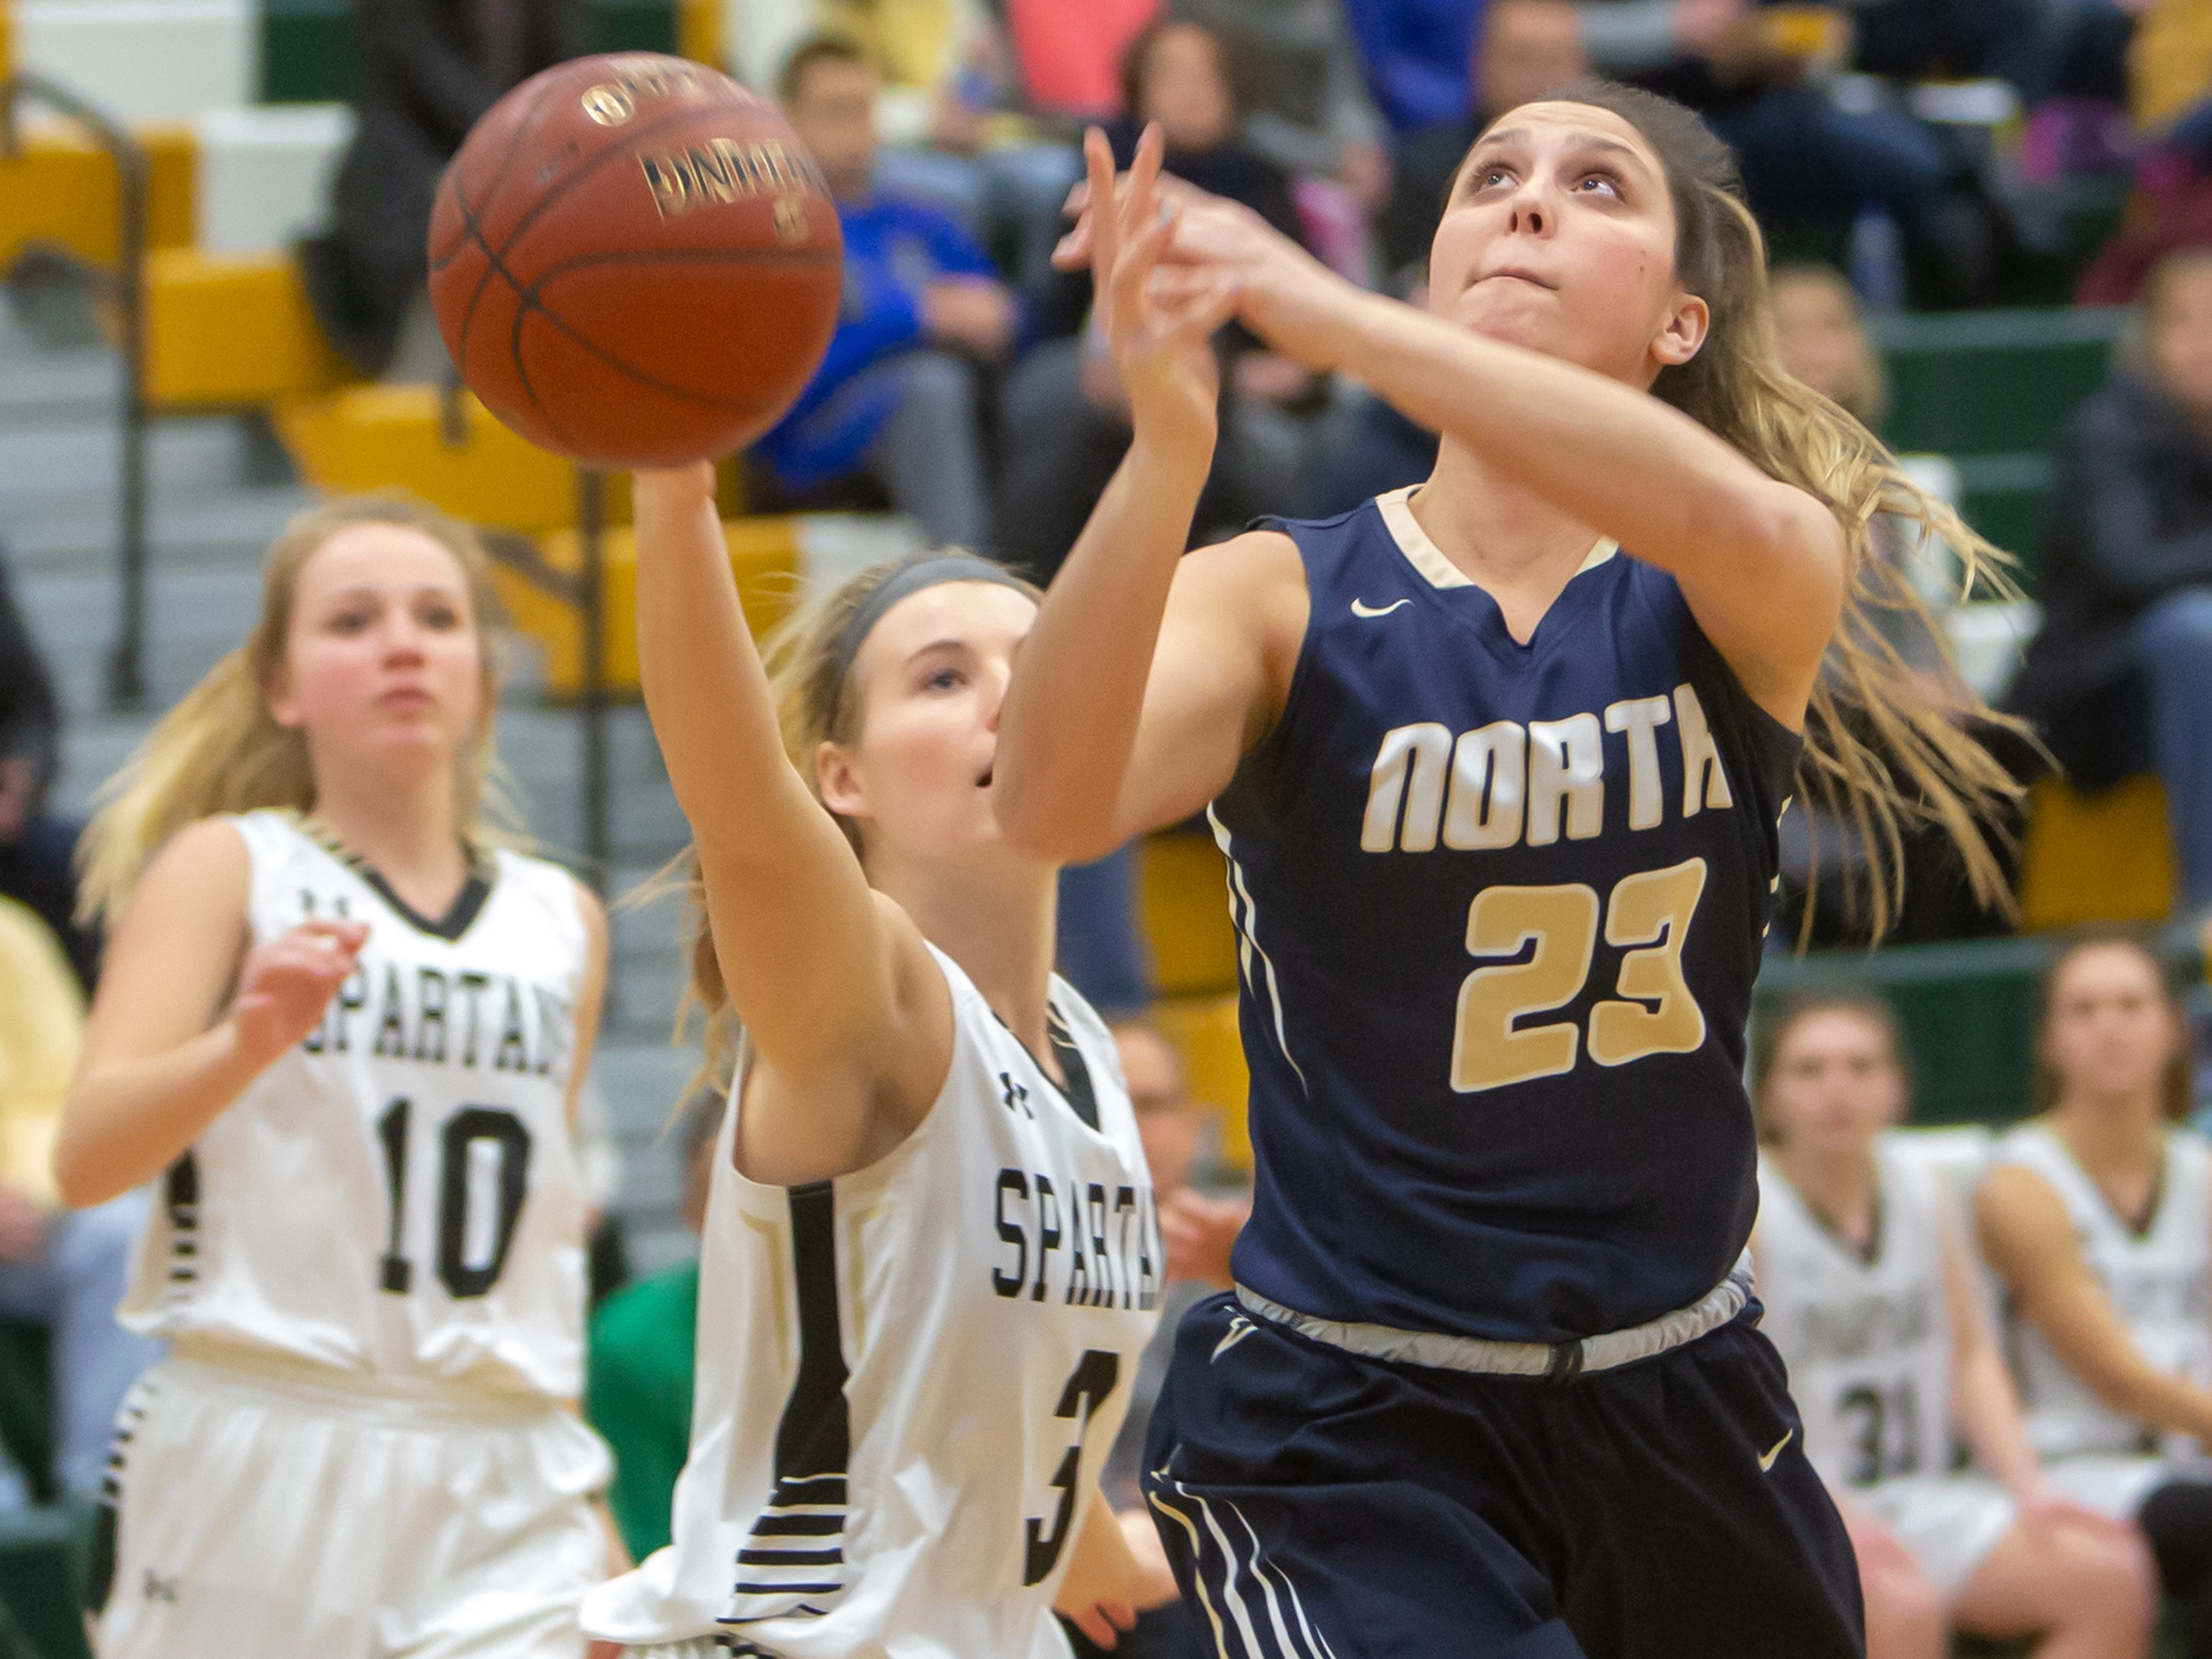 Appleton North's Paige Schabo loses control of the ball during a shot at girls basketball game against the Spartans Friday, February 8, 2019, in Oshkosh, Wis., at Oshkosh North High School.